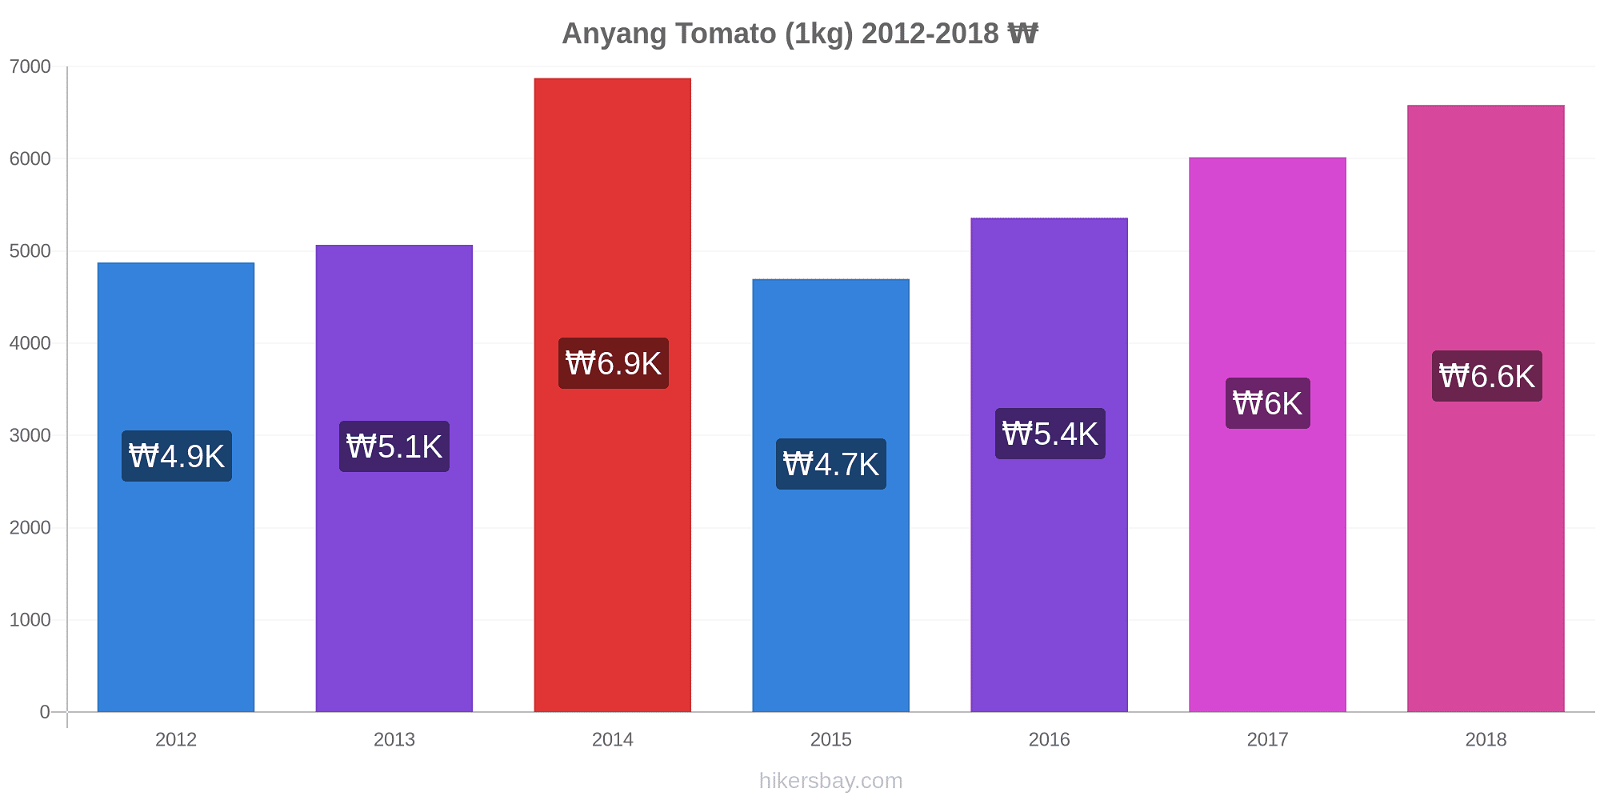 Anyang price changes Tomato (1kg) hikersbay.com